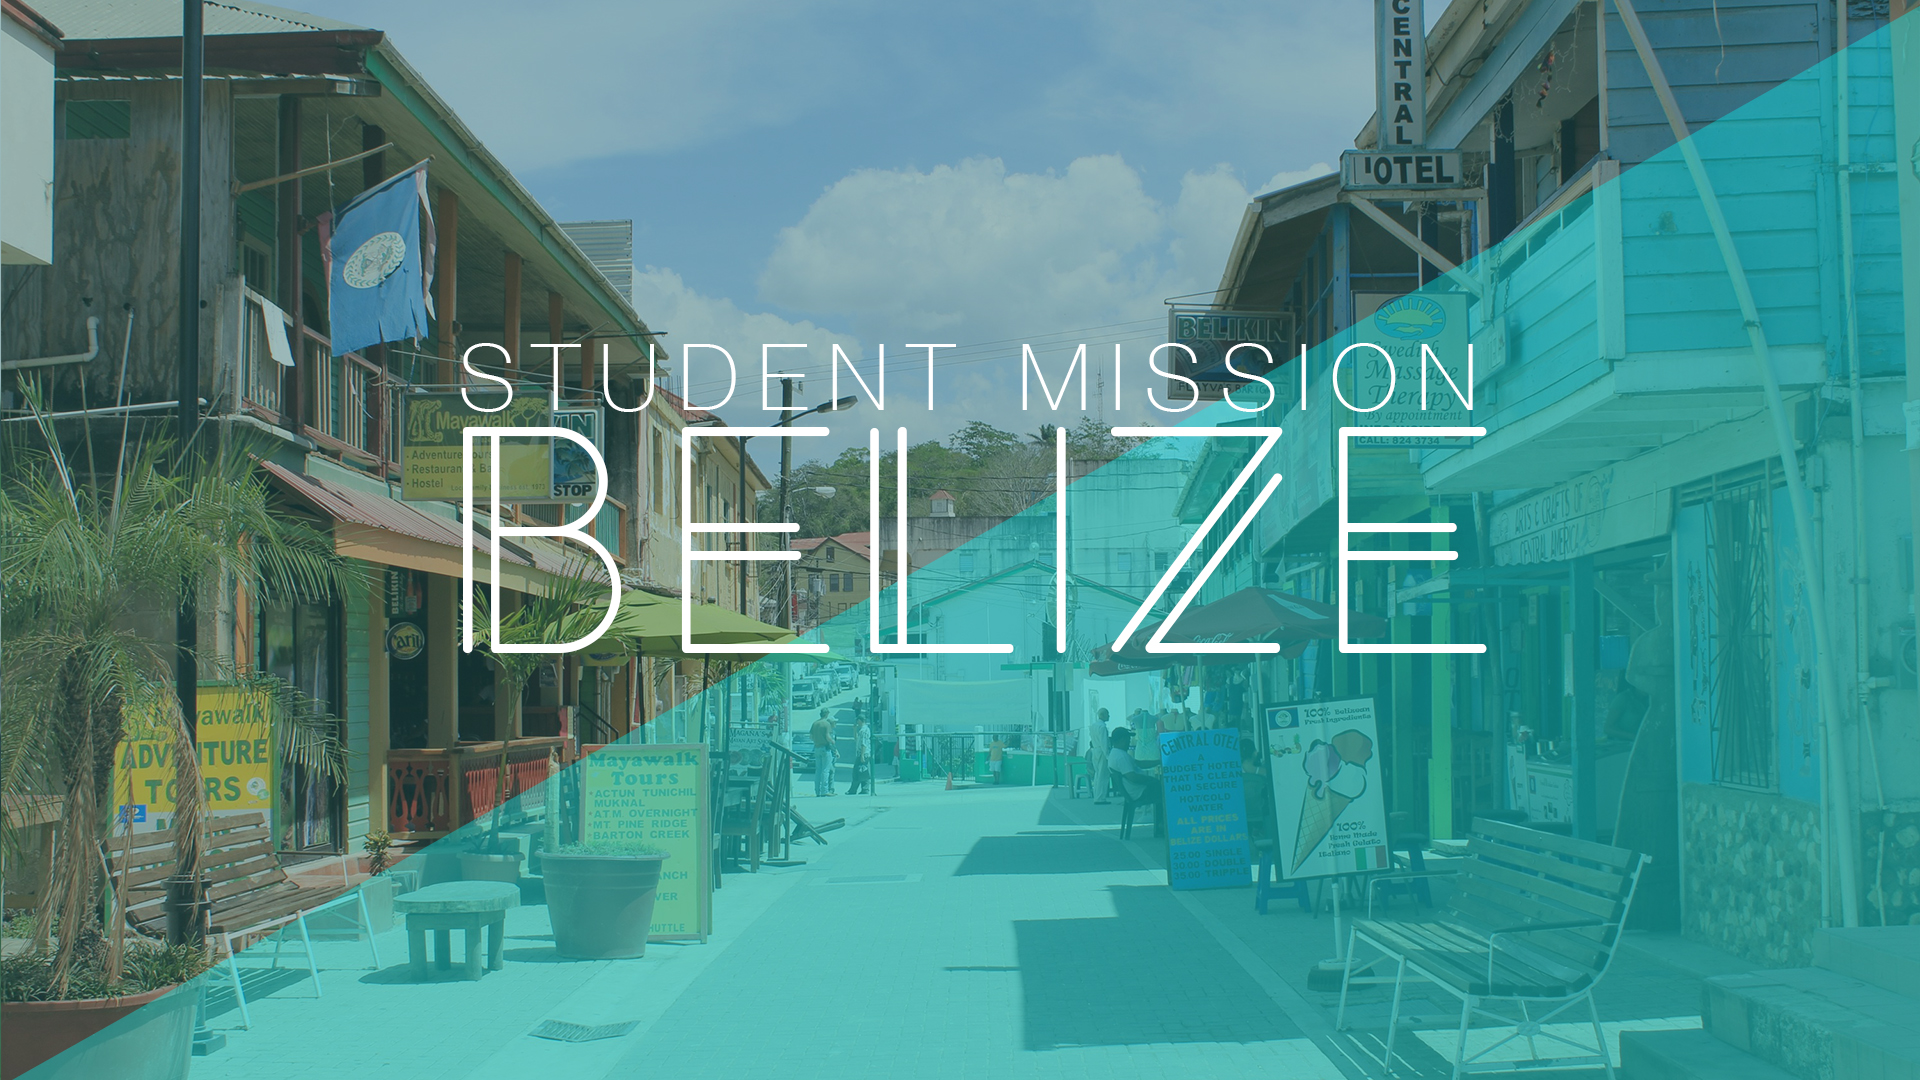 Student Mission Belize.jpg